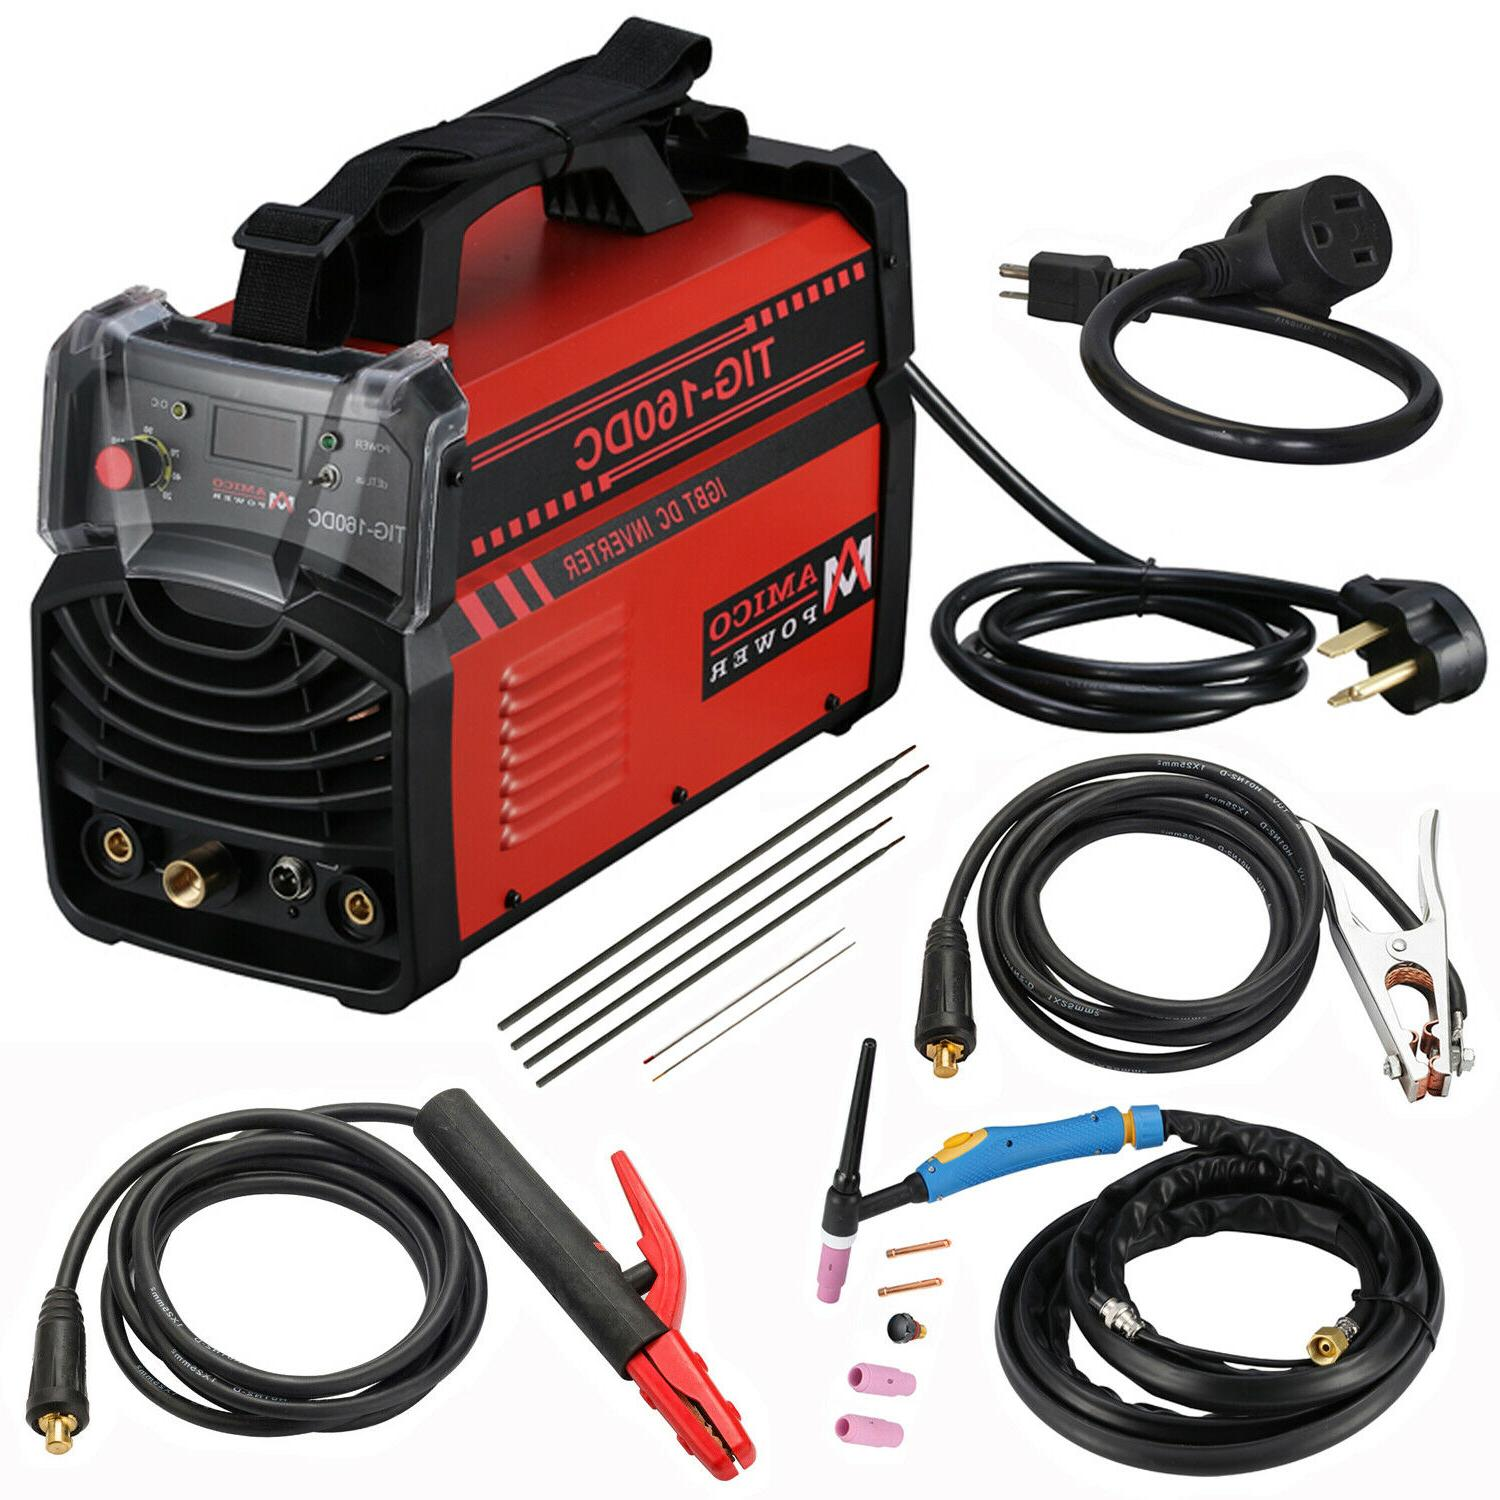 TIG-160 Amp TIG Torch Stick Arc MMA DC Inverter Welder, 110V